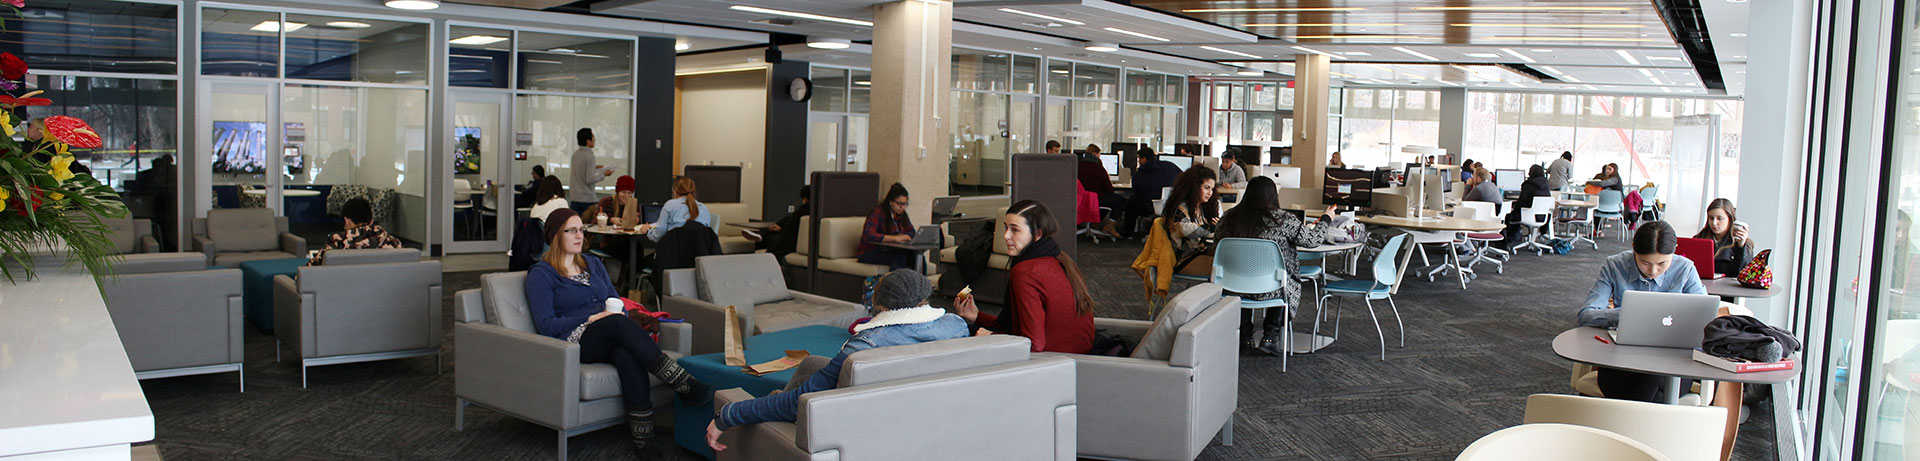 Students study in the Adele Hall Learning Commons